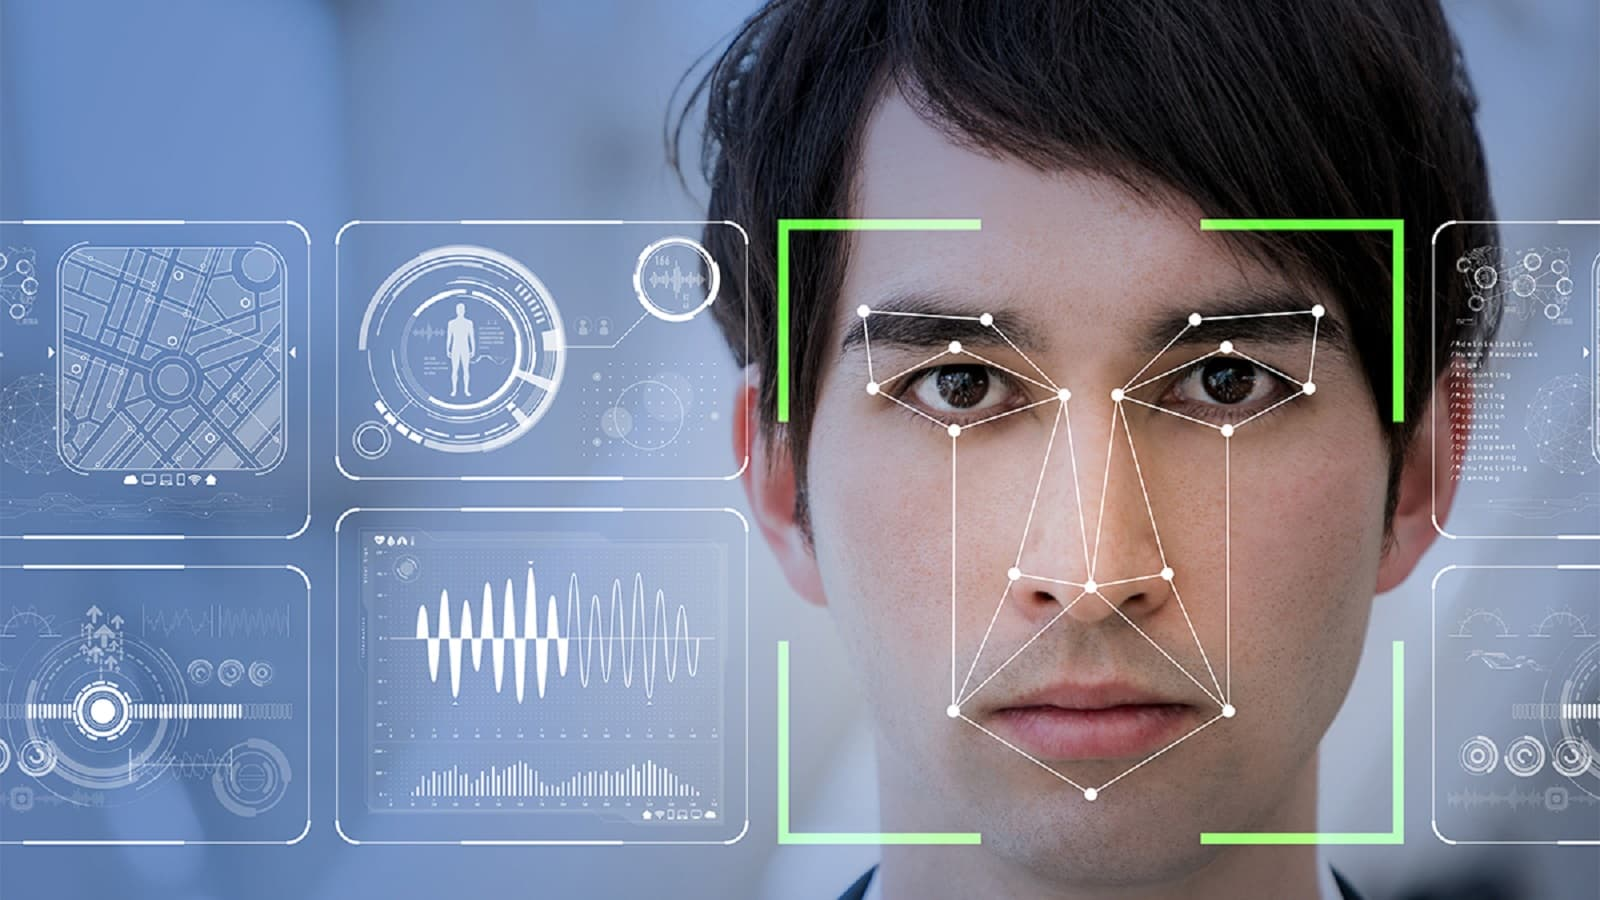 facial recognition being shown on a person with fingerprint data